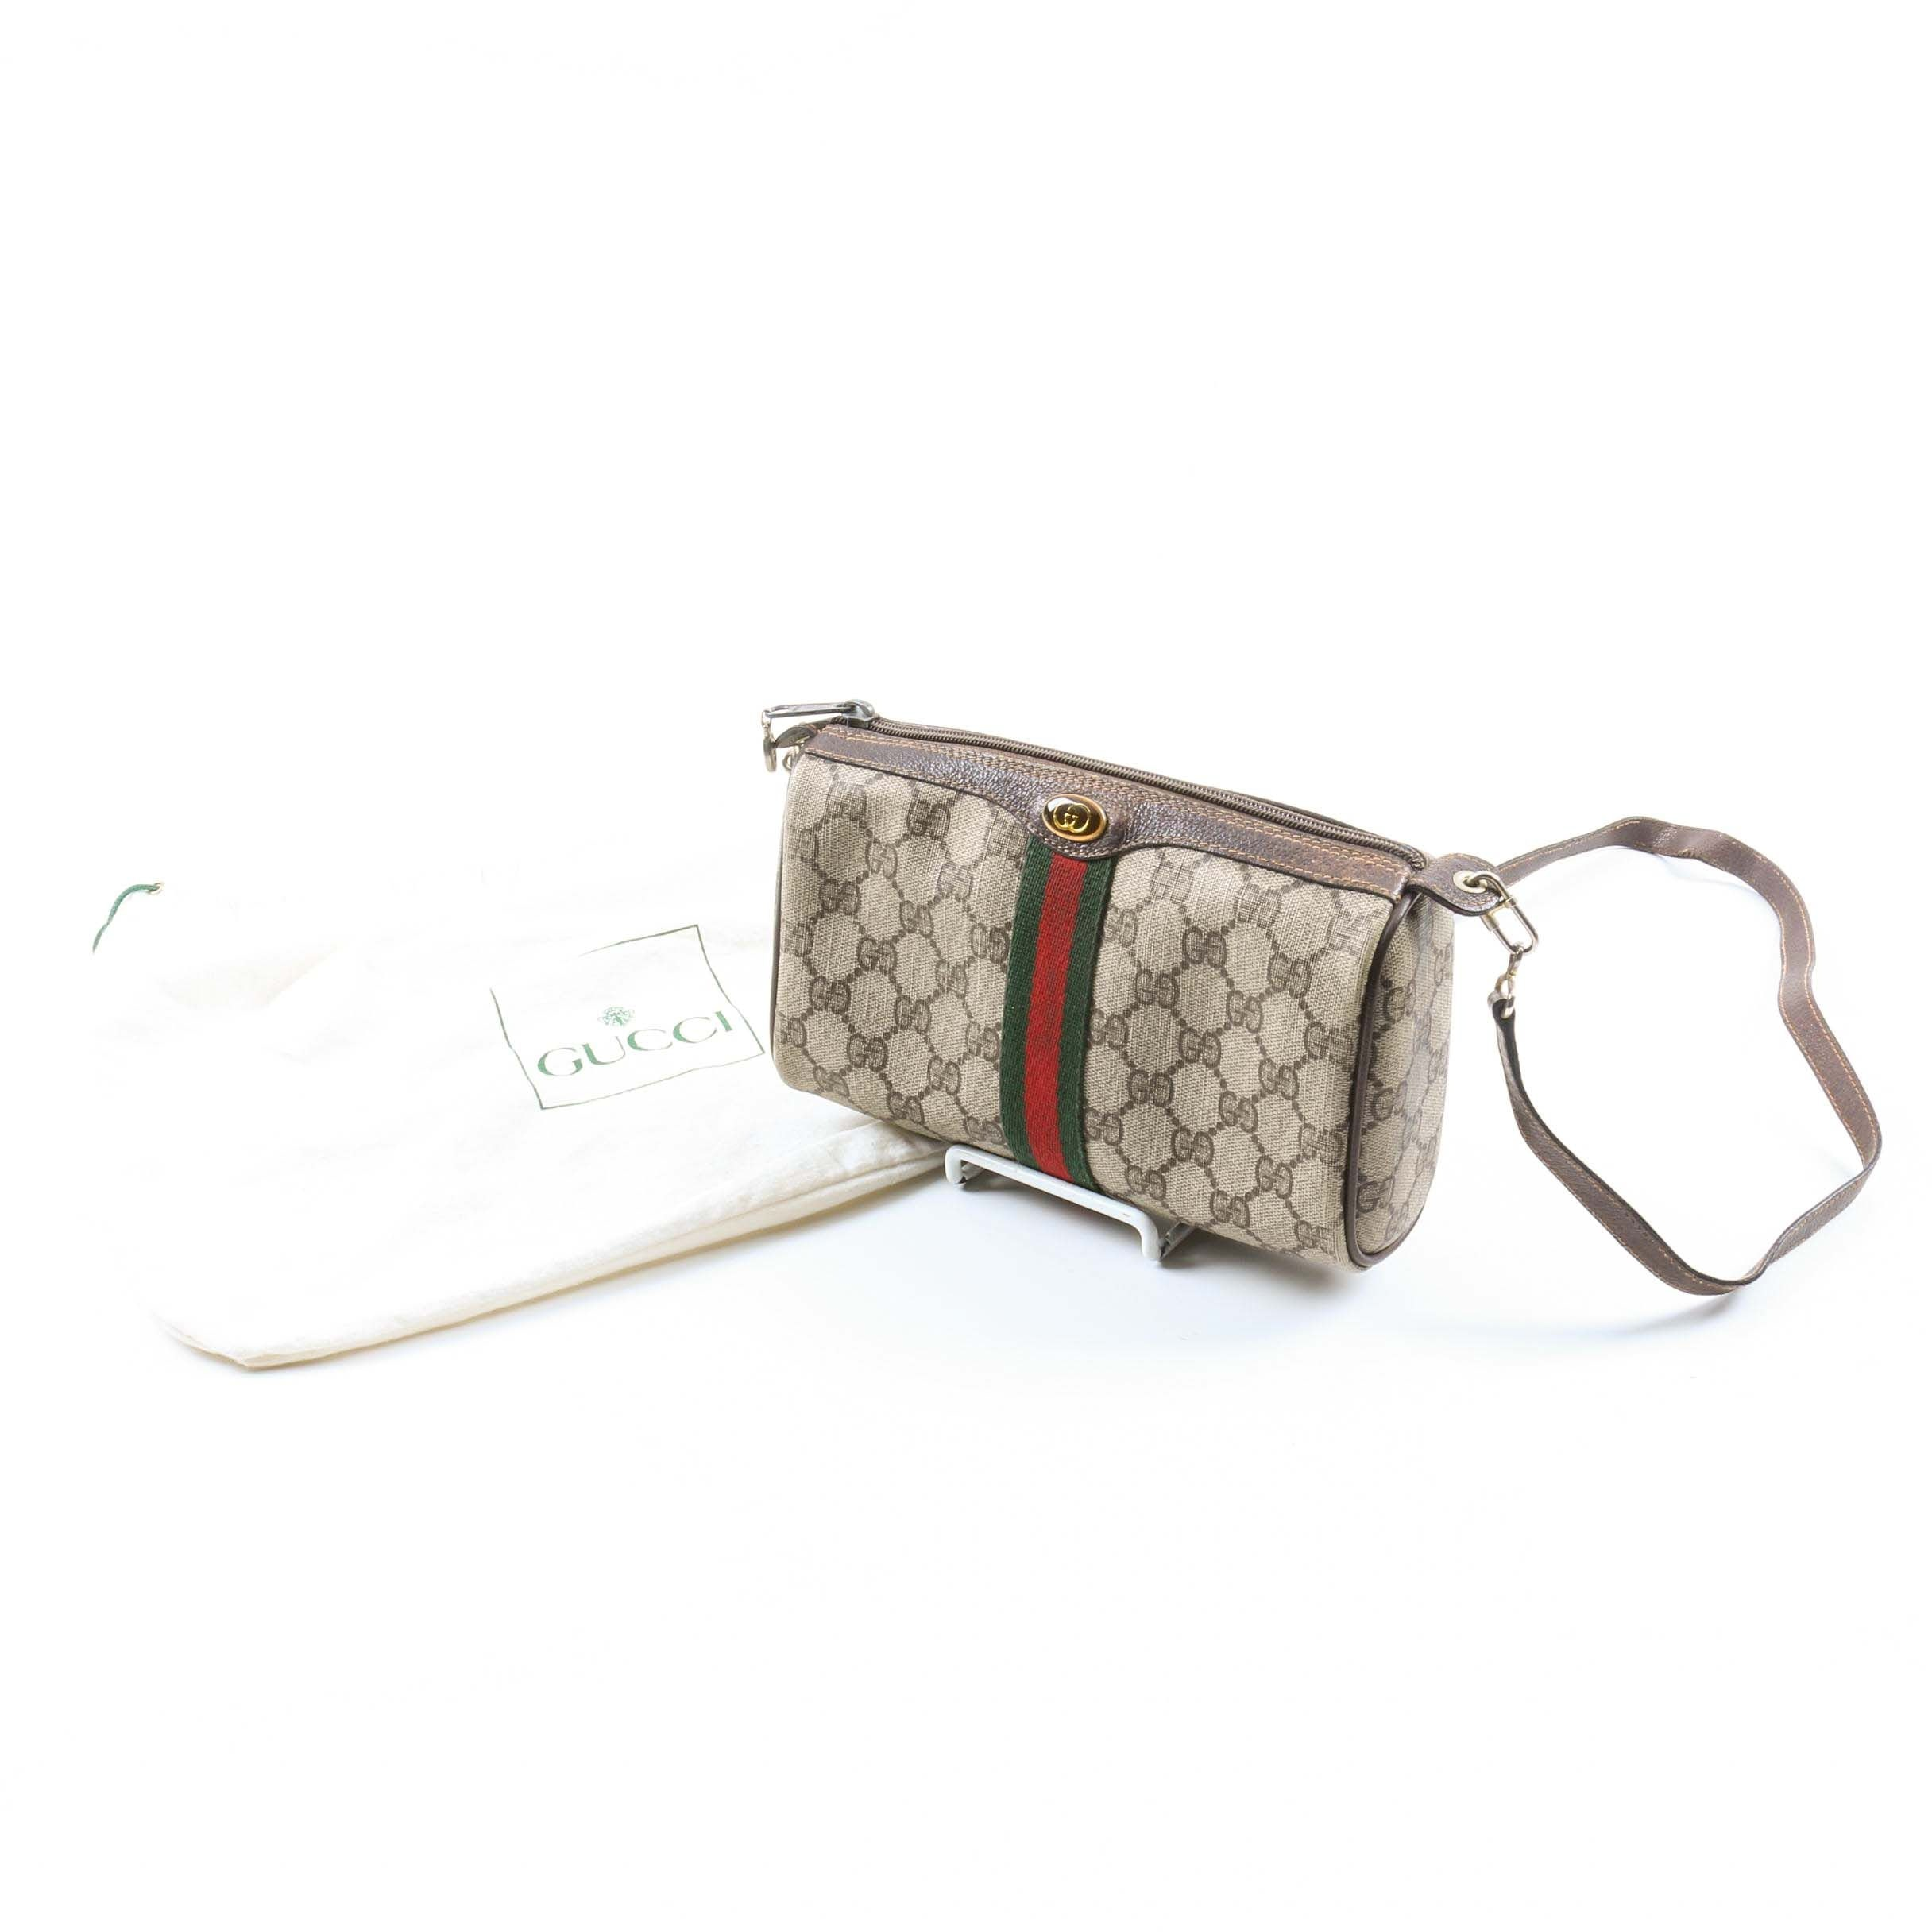 Vintage Gucci Signature Canvas Crossbody